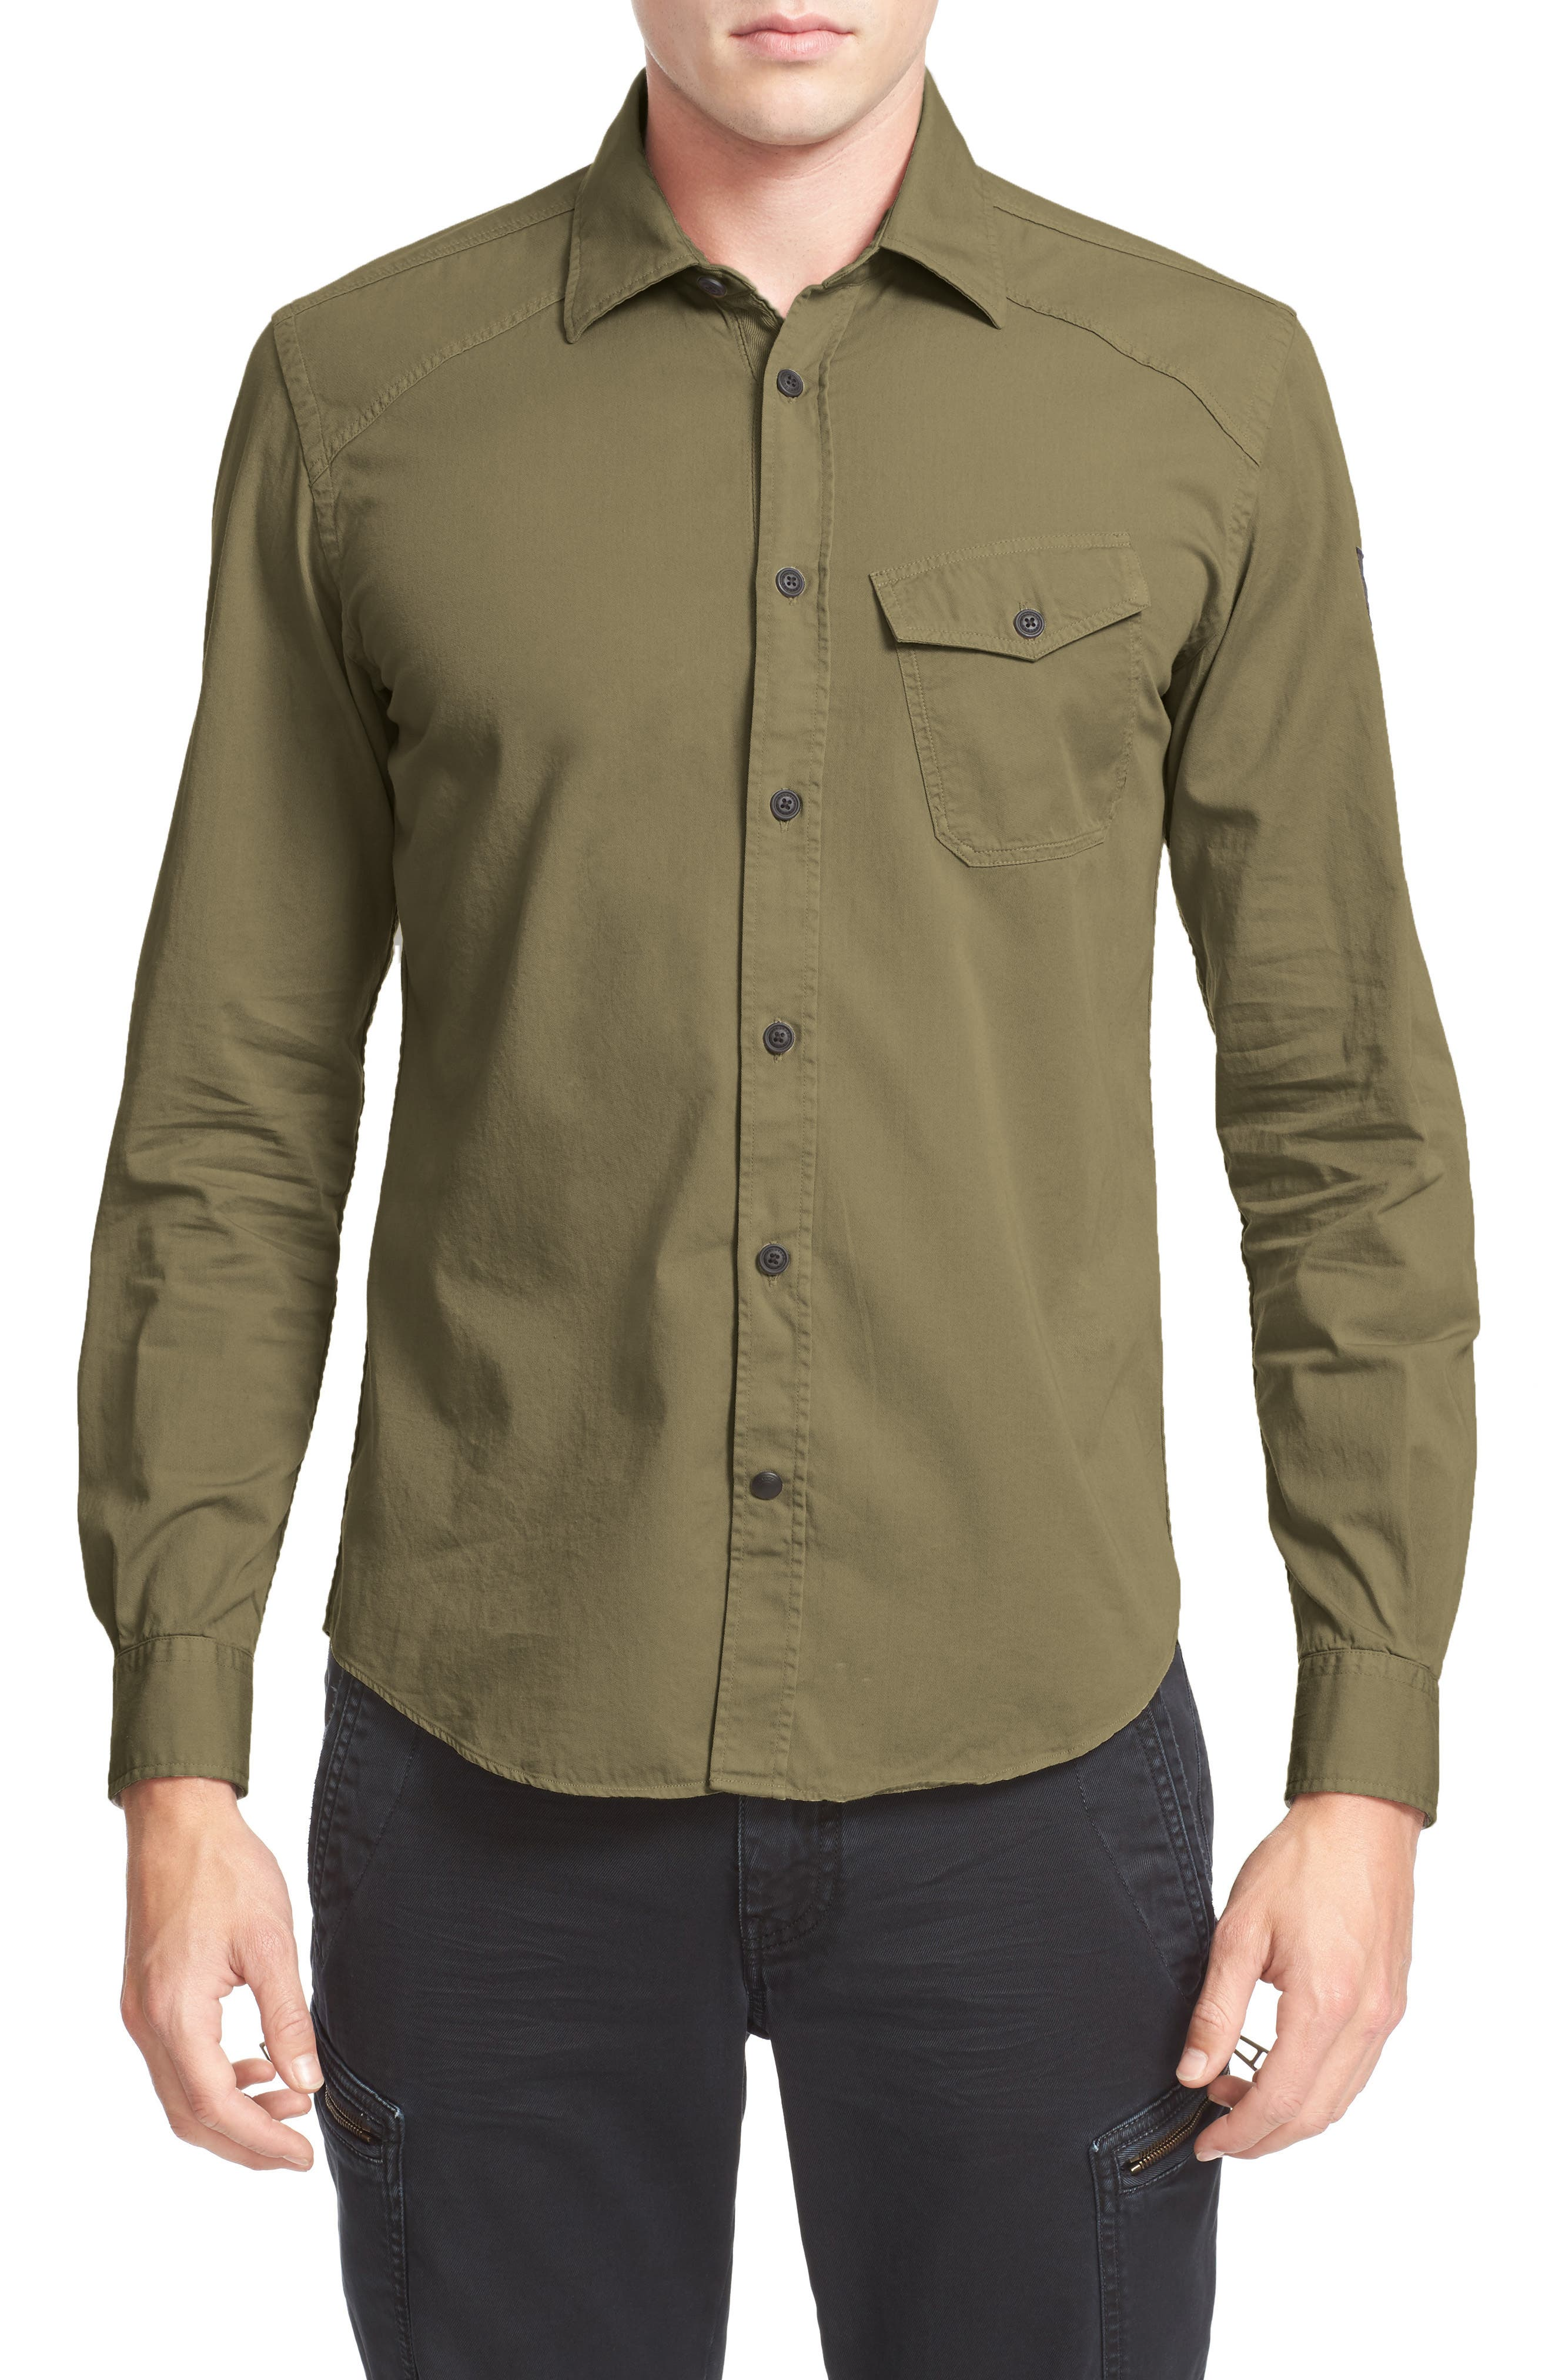 Steadway Woven Shirt,                             Main thumbnail 1, color,                             Military Green